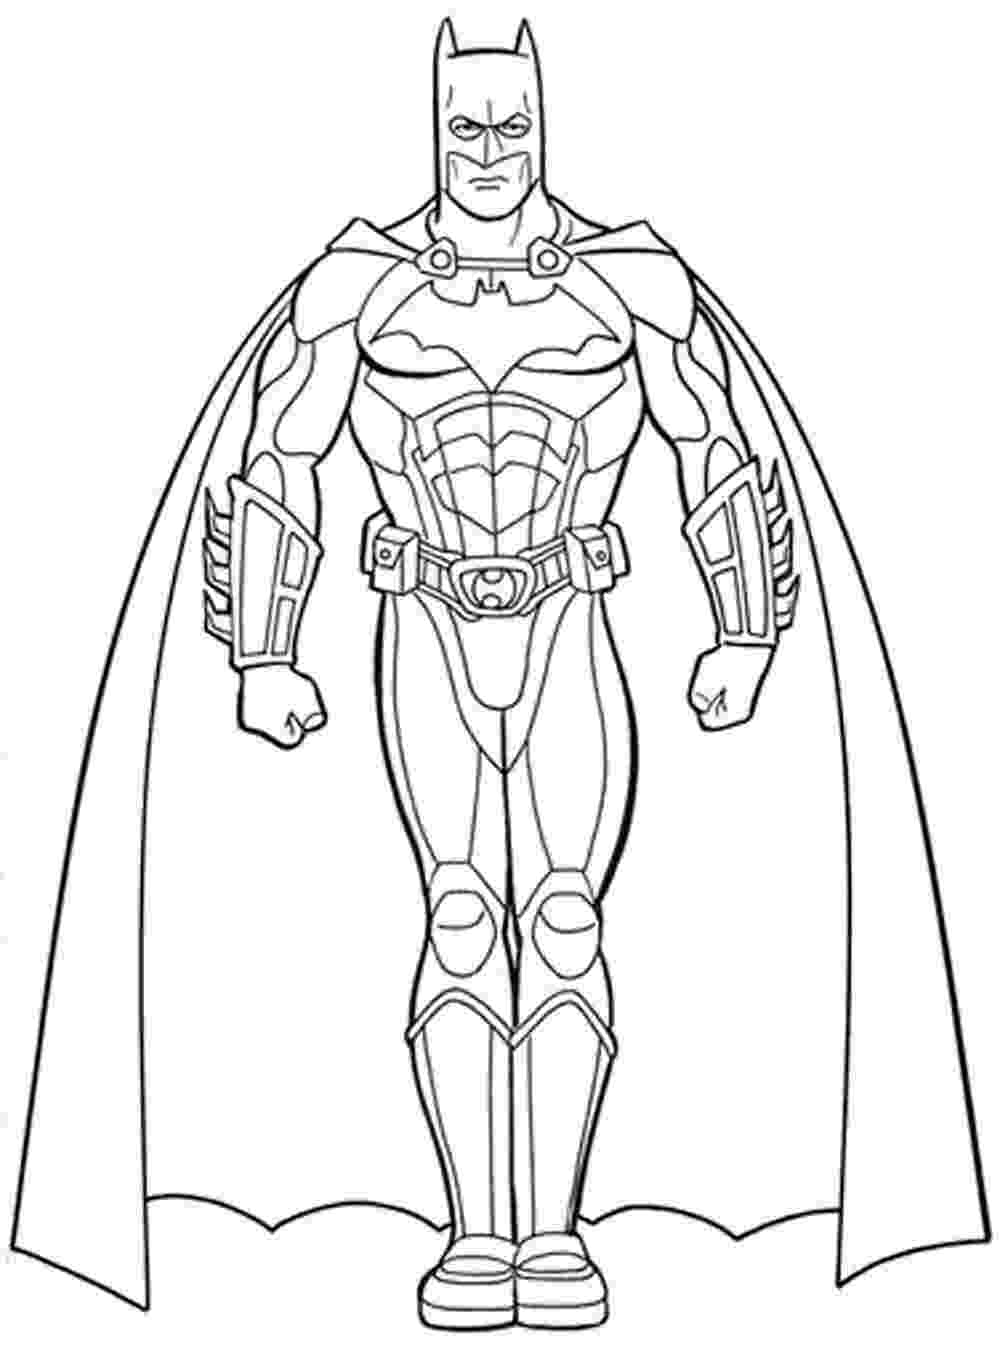 batman free coloring pages coloring pages batman free downloadable coloring pages batman free pages coloring